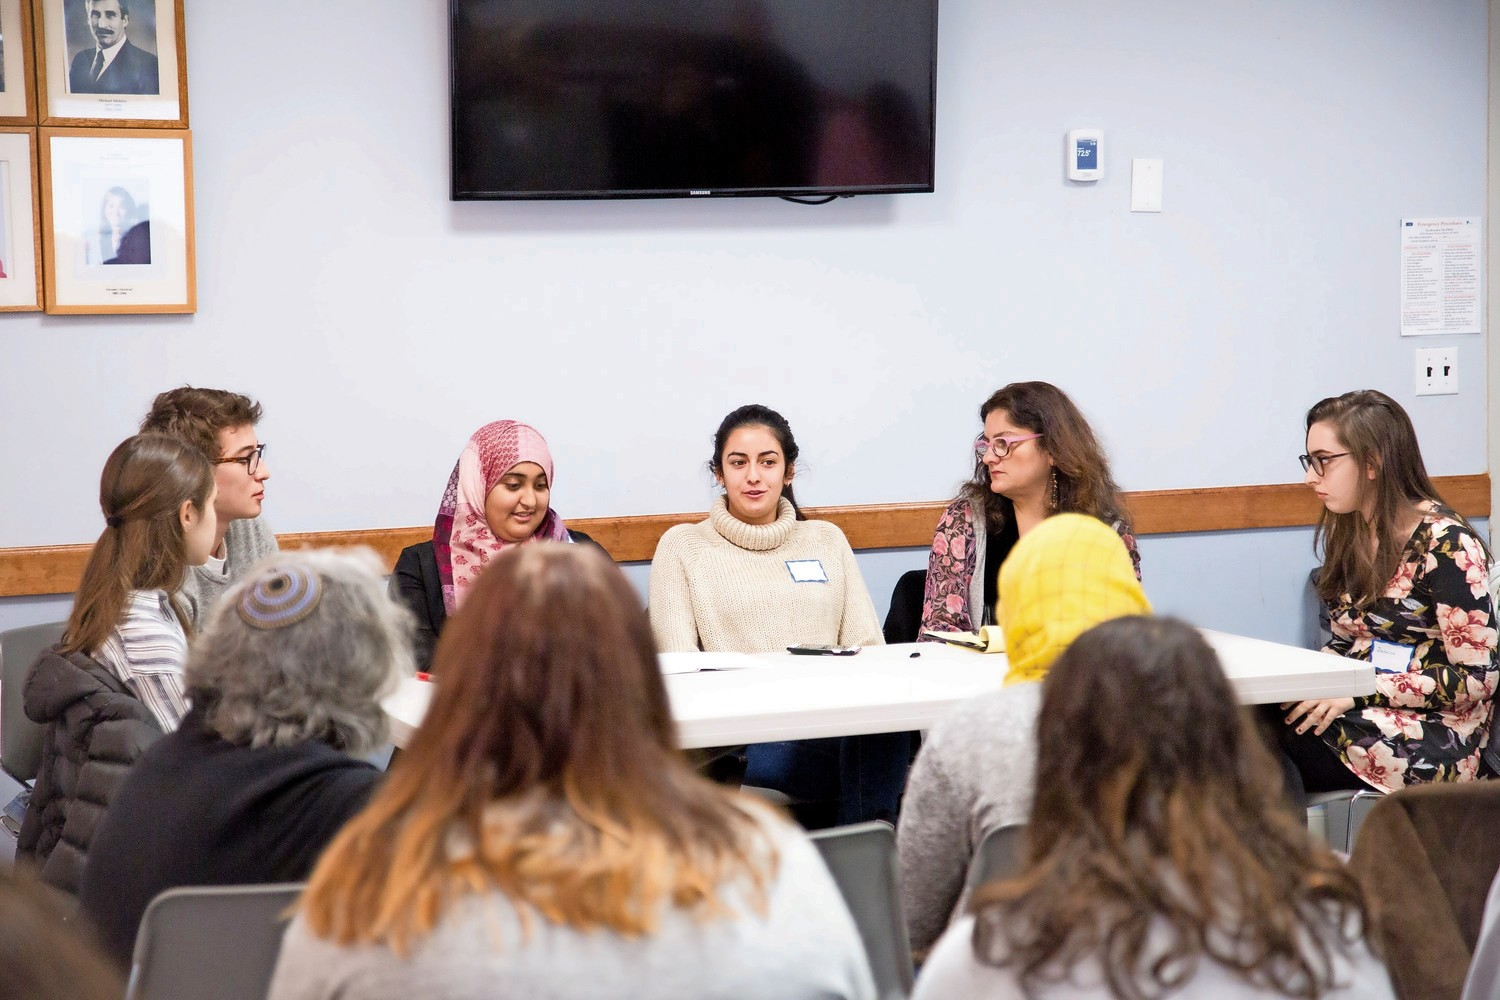 Nadia Itani, a Muslim student at Manhattan College, speaks at an interfaith event for Jewish and Muslim youth at the Riverdale Y.